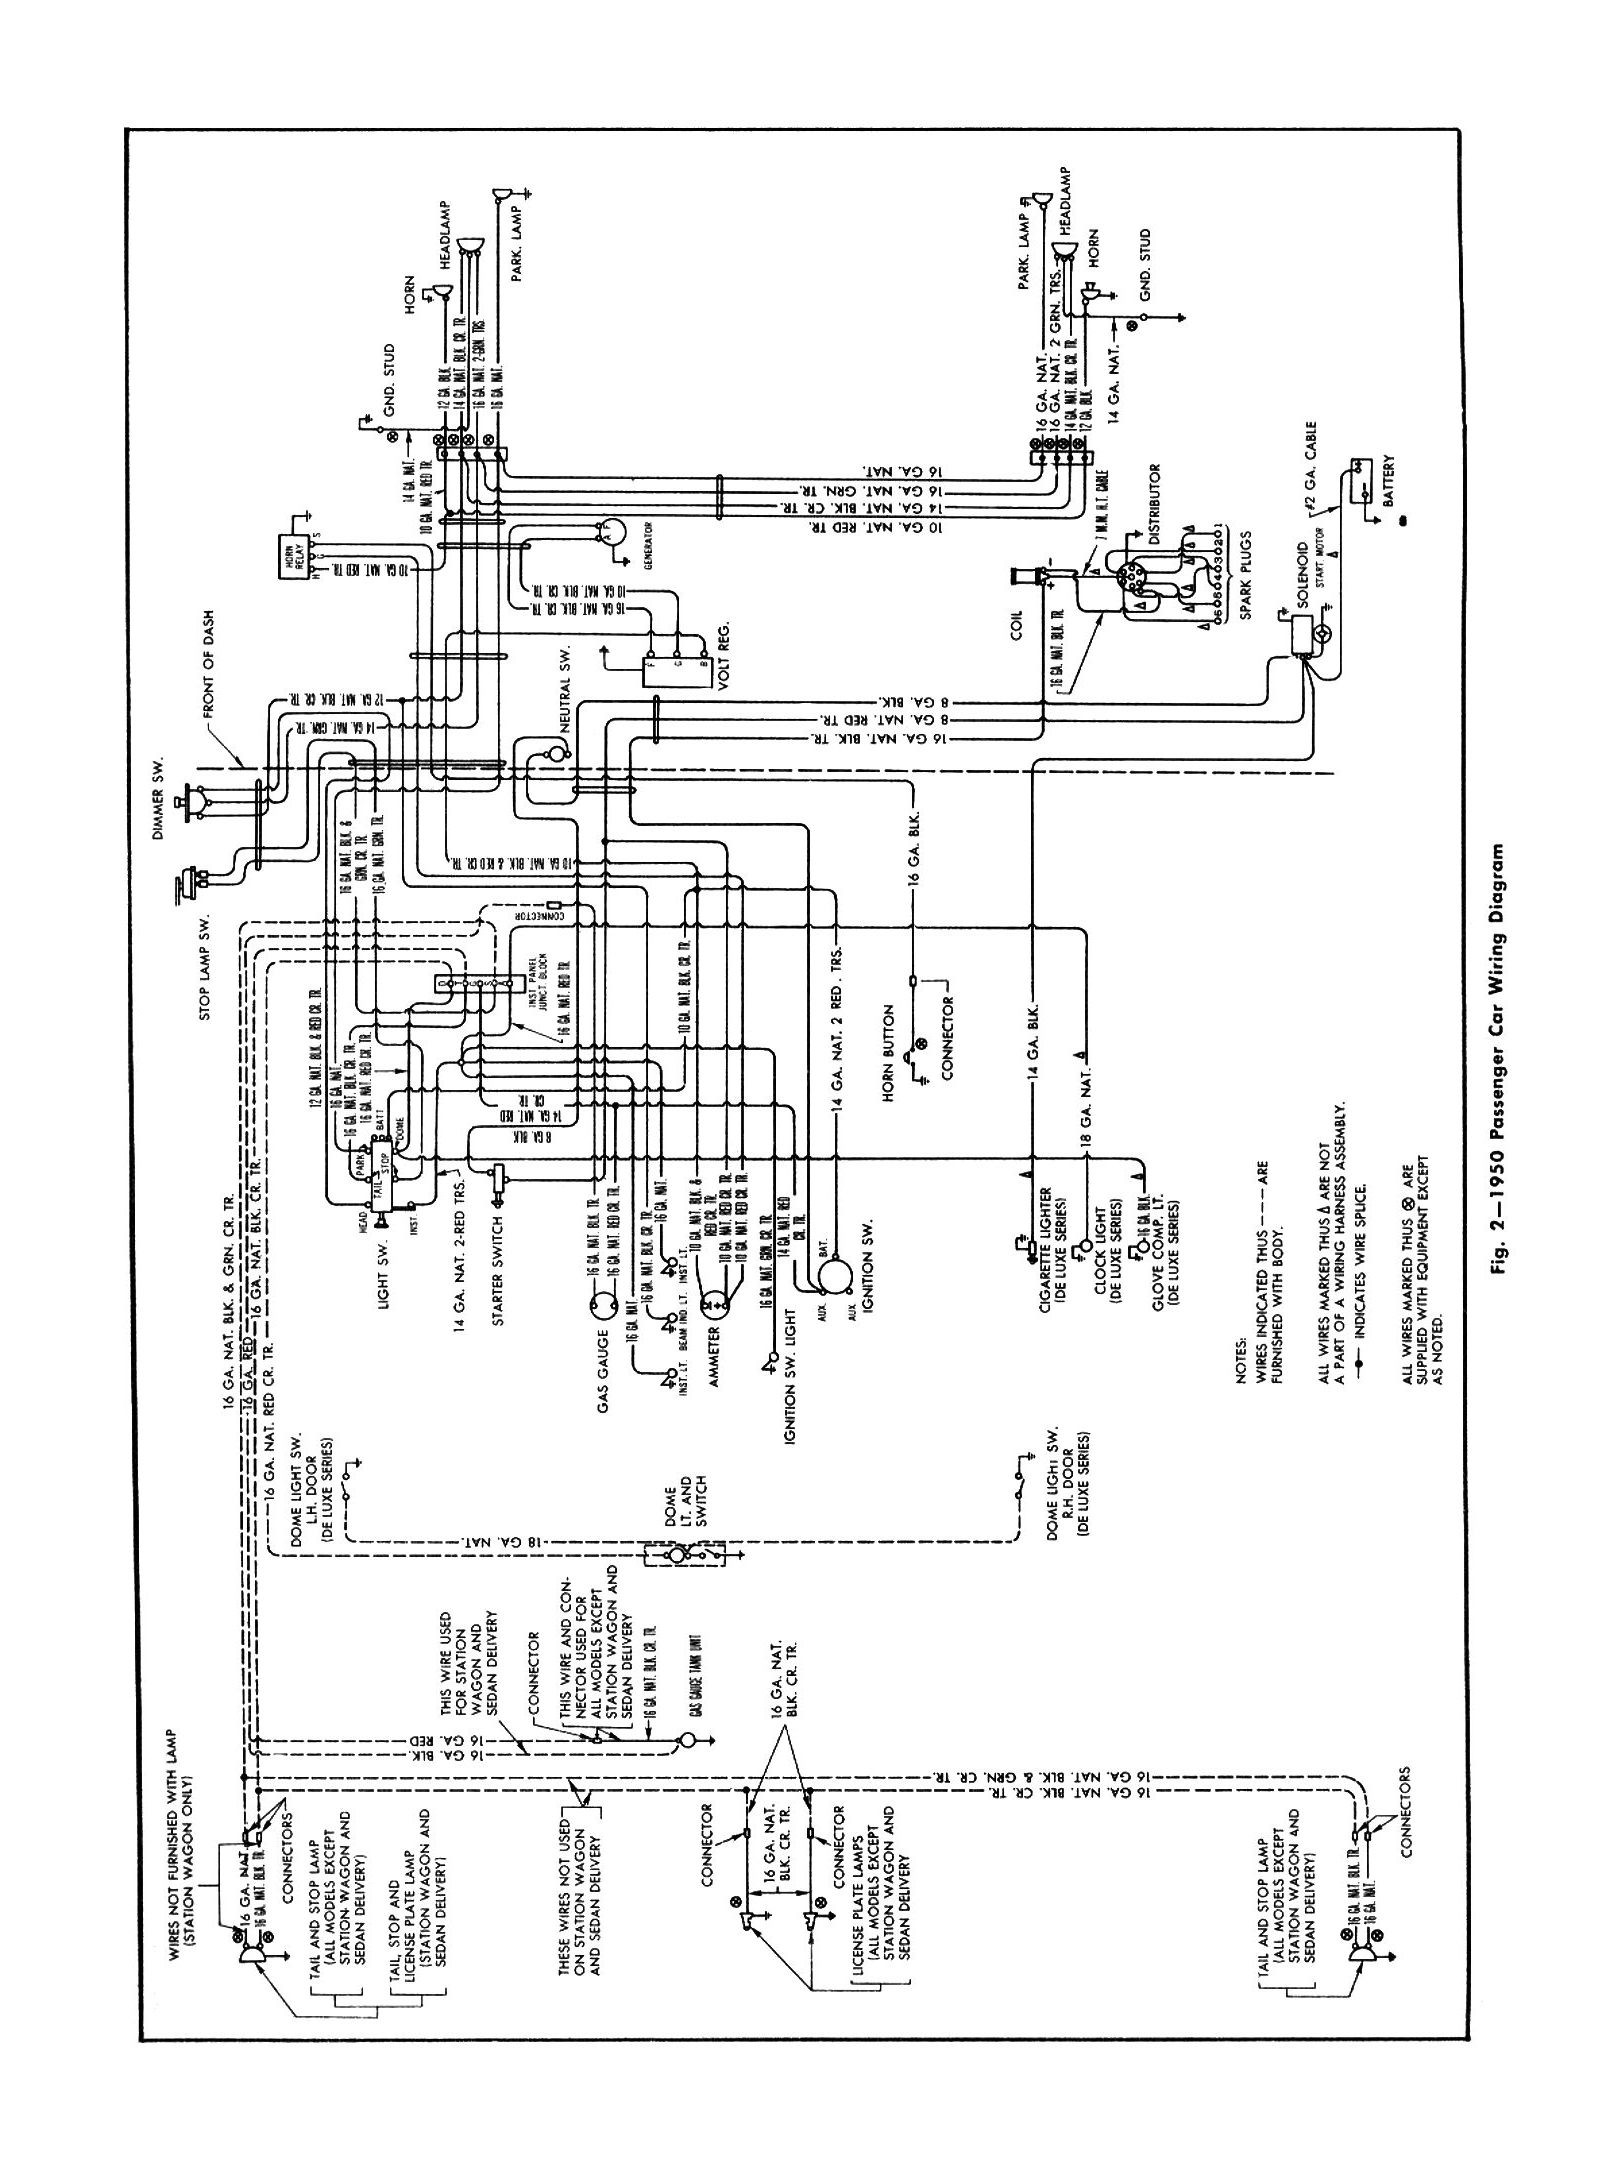 753807805198106626 further Lutron 3 Way Dimmer Switch Wiring Diagram likewise Wiring Diagrams For Ski Doo also 2006 Ez Go Txt Wiring Diagram 2002 Electric Golf Cart For Ezgo Readingrat   59781e998bf27   Wiring Diagram likewise Wiring Diagram Honda Civic 1997. on 2 way trailer lights wiring system